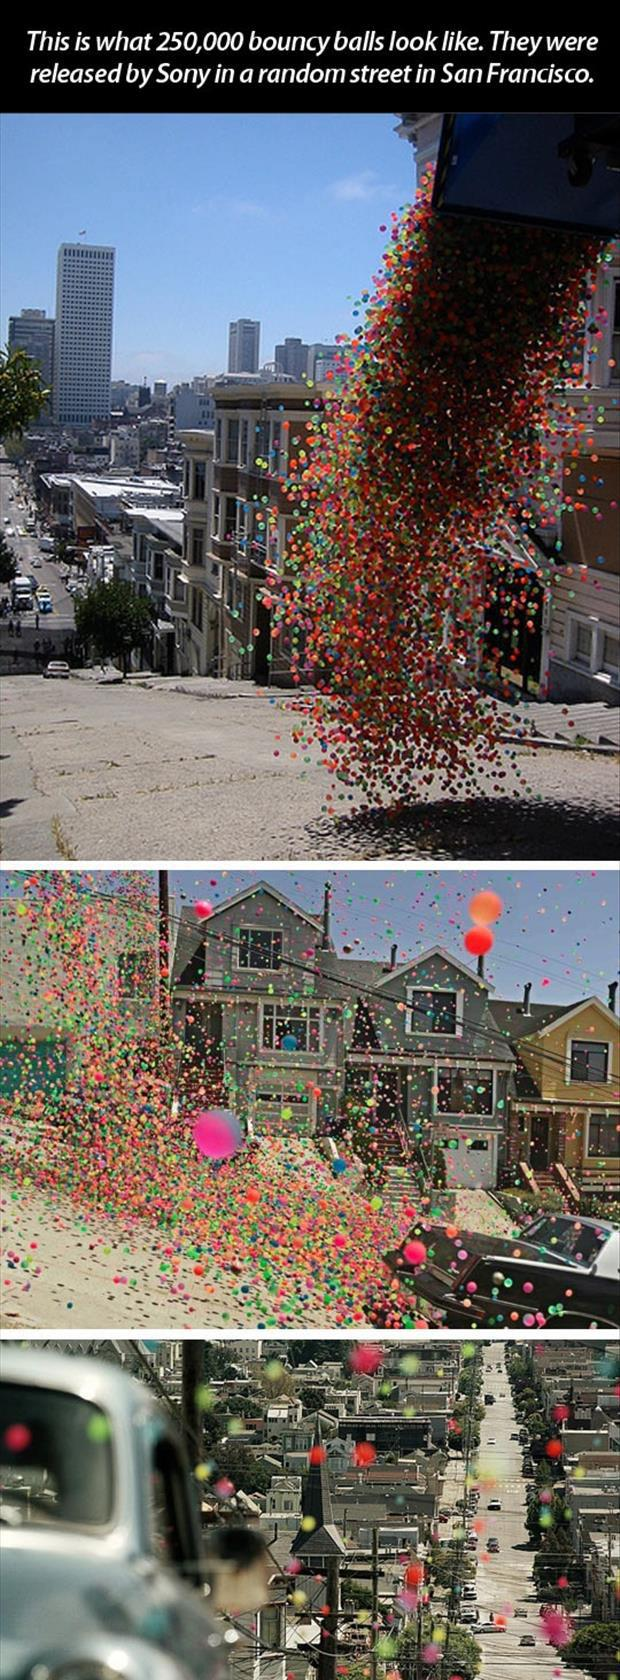 sony launches 250,000 bouncy balls (1)